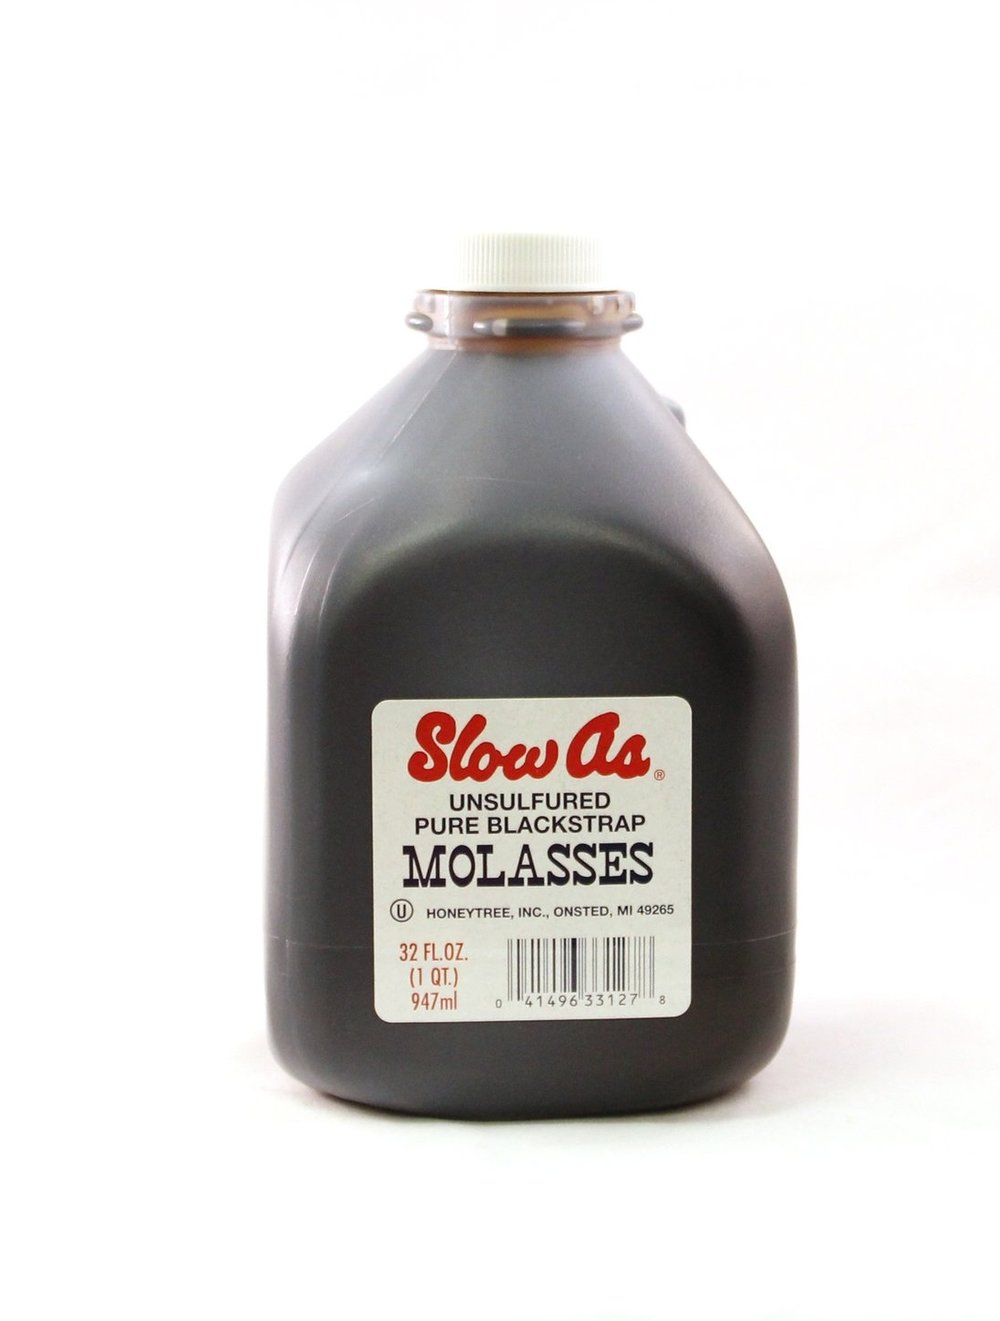 10442 - SLOW AS MOL BS 32 FL OZ.jpg